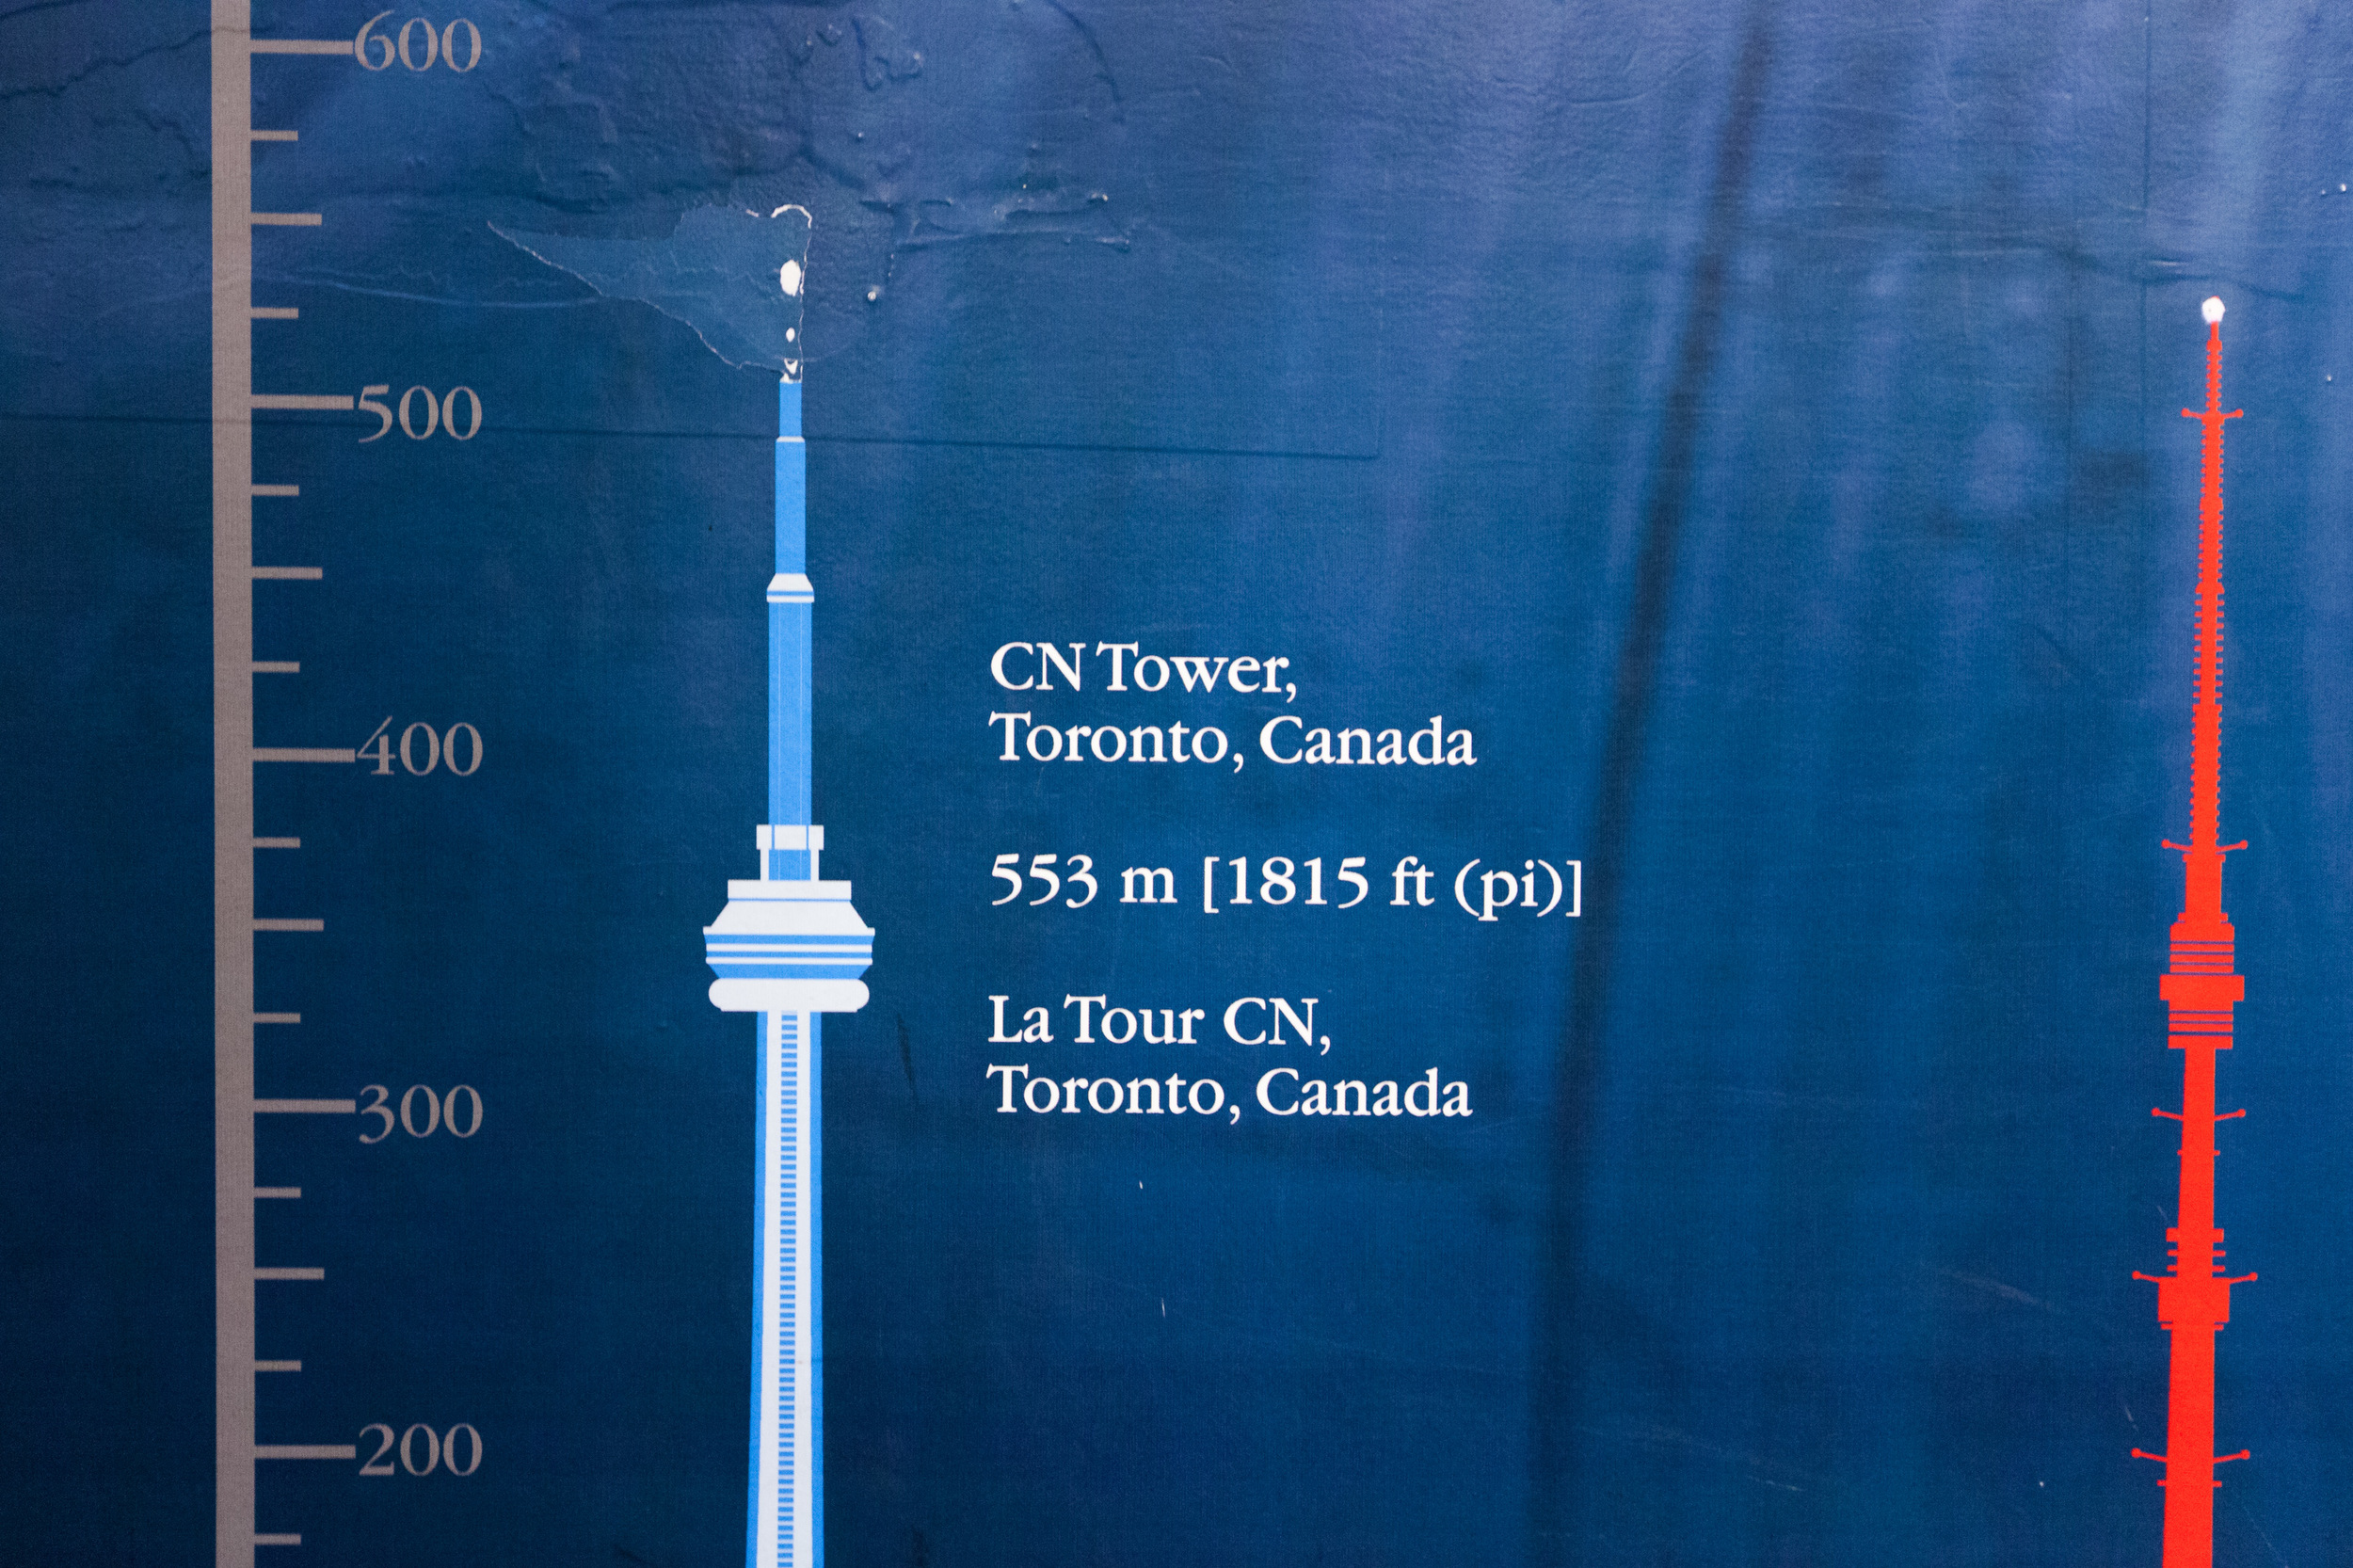 The CN Tower is tall